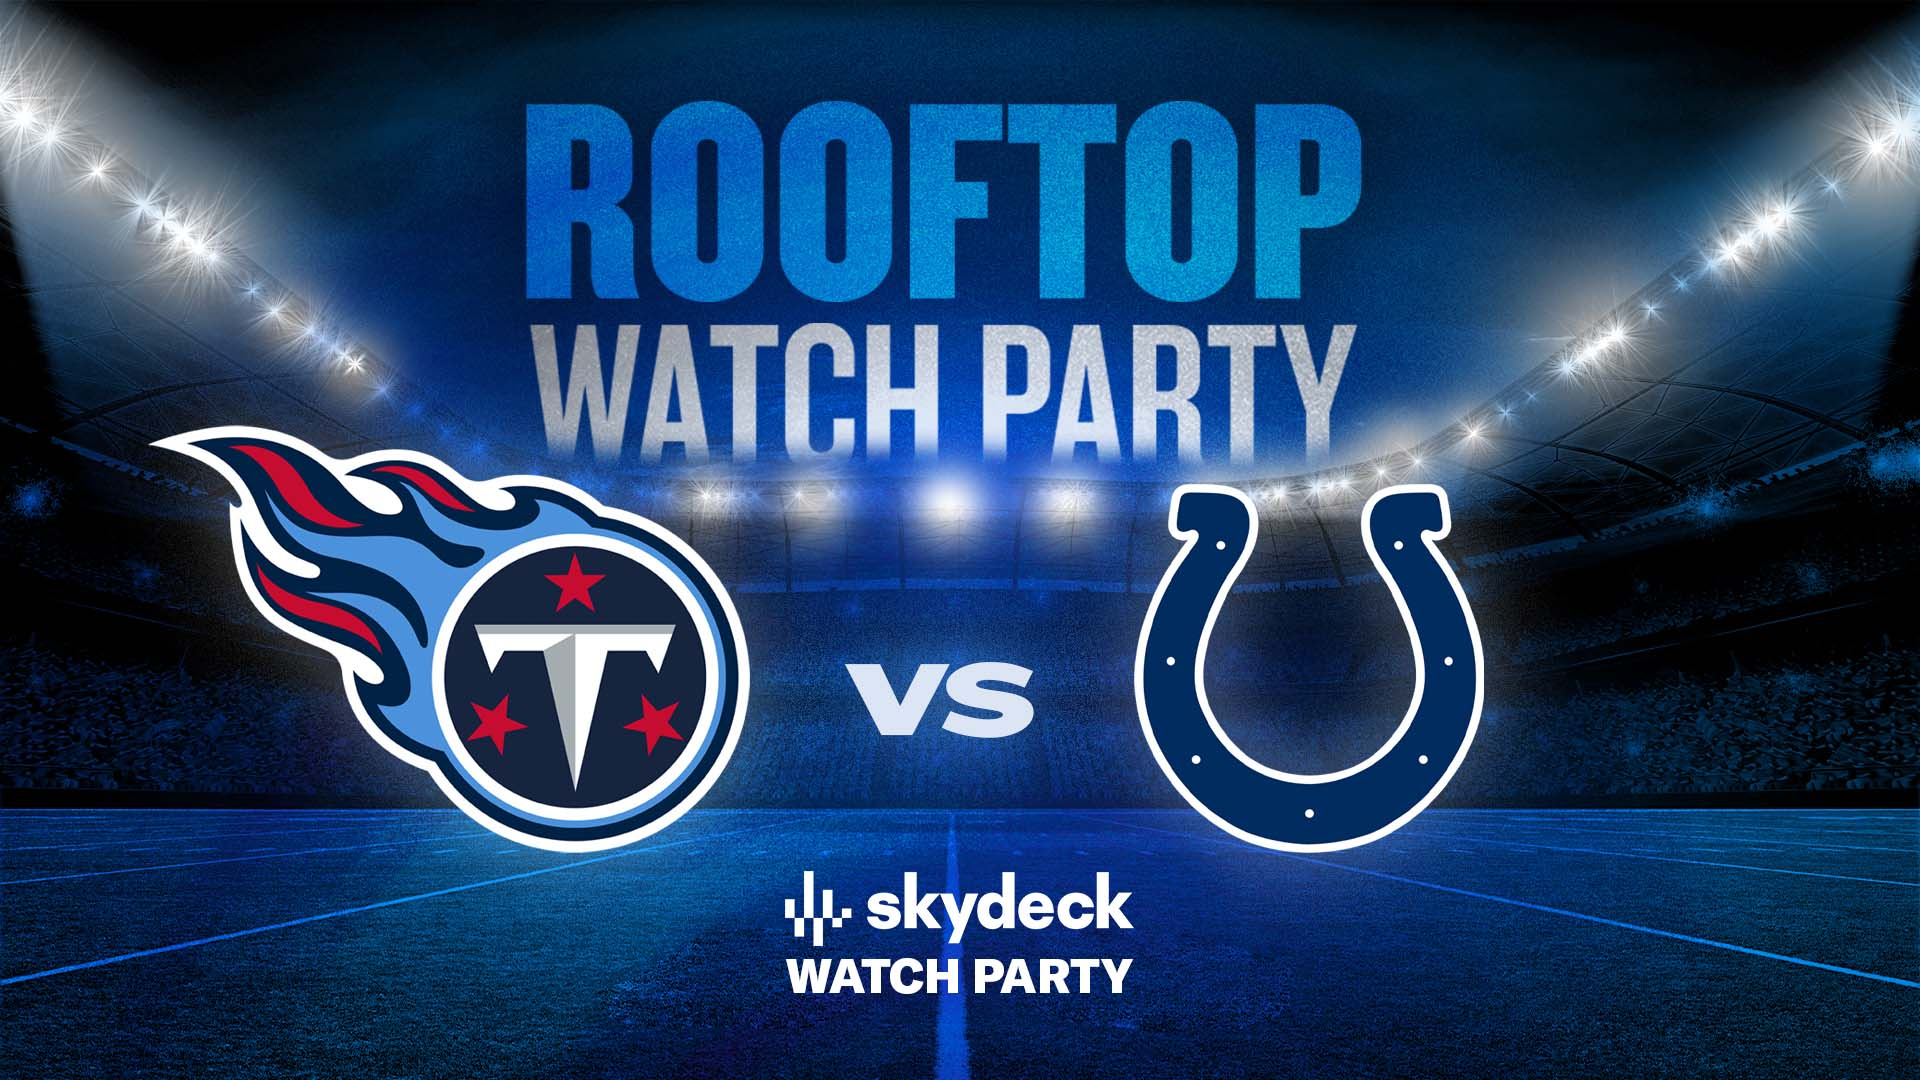 Promo image of Titans vs. Colts Skydeck Watch Party